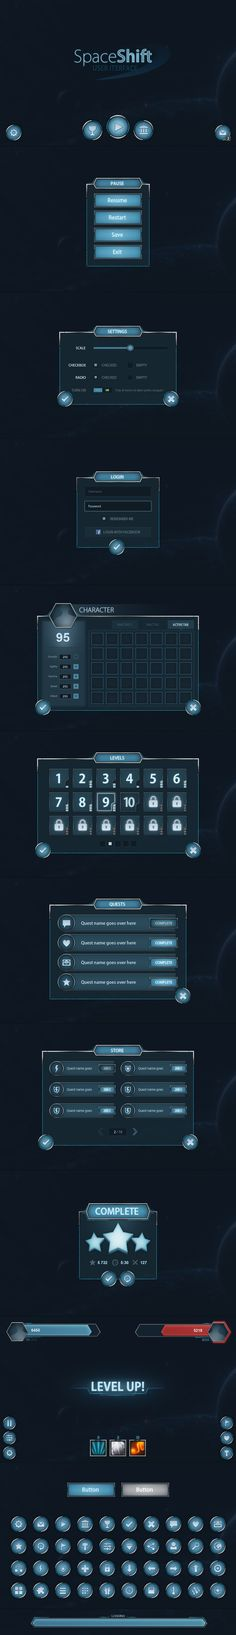 Spaceshift Mobile UI by Evil-S.deviantart.com on @DeviantArt